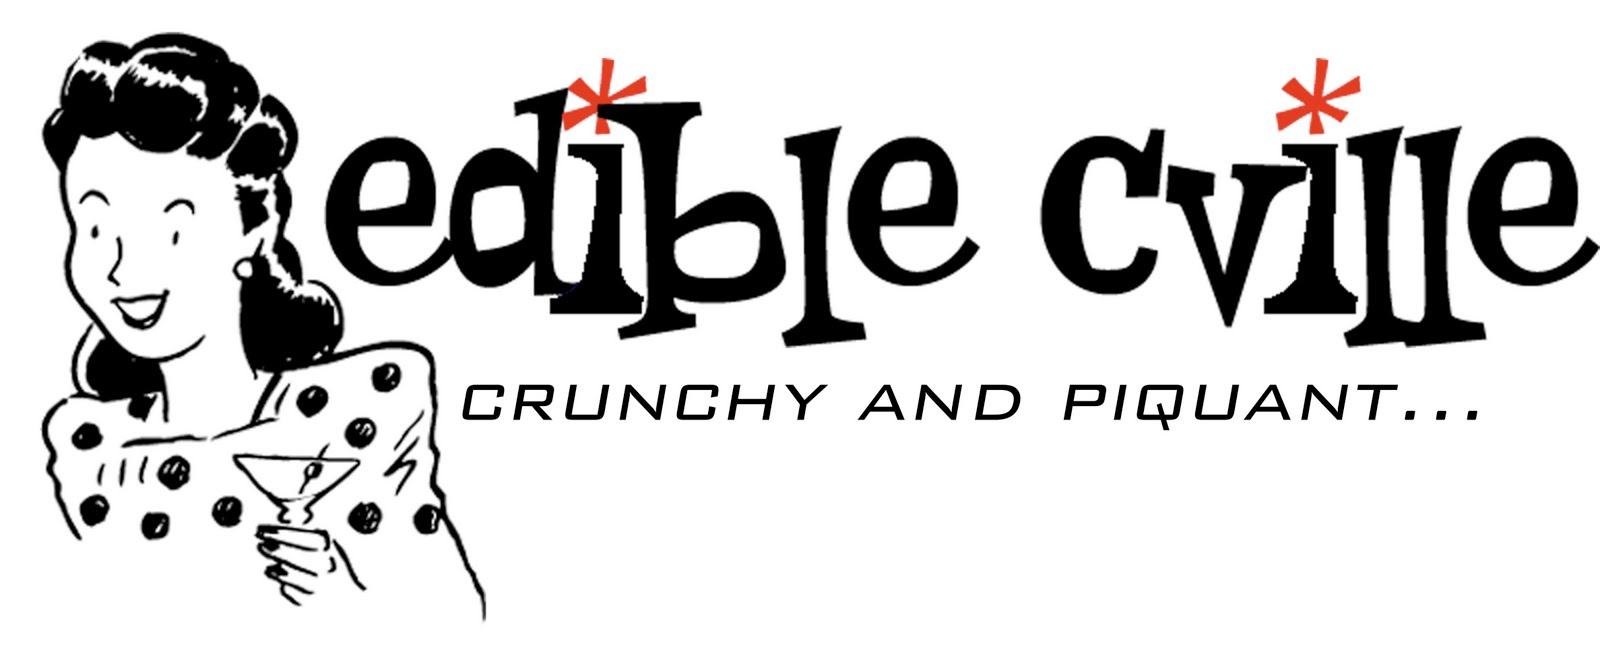 edible cville...